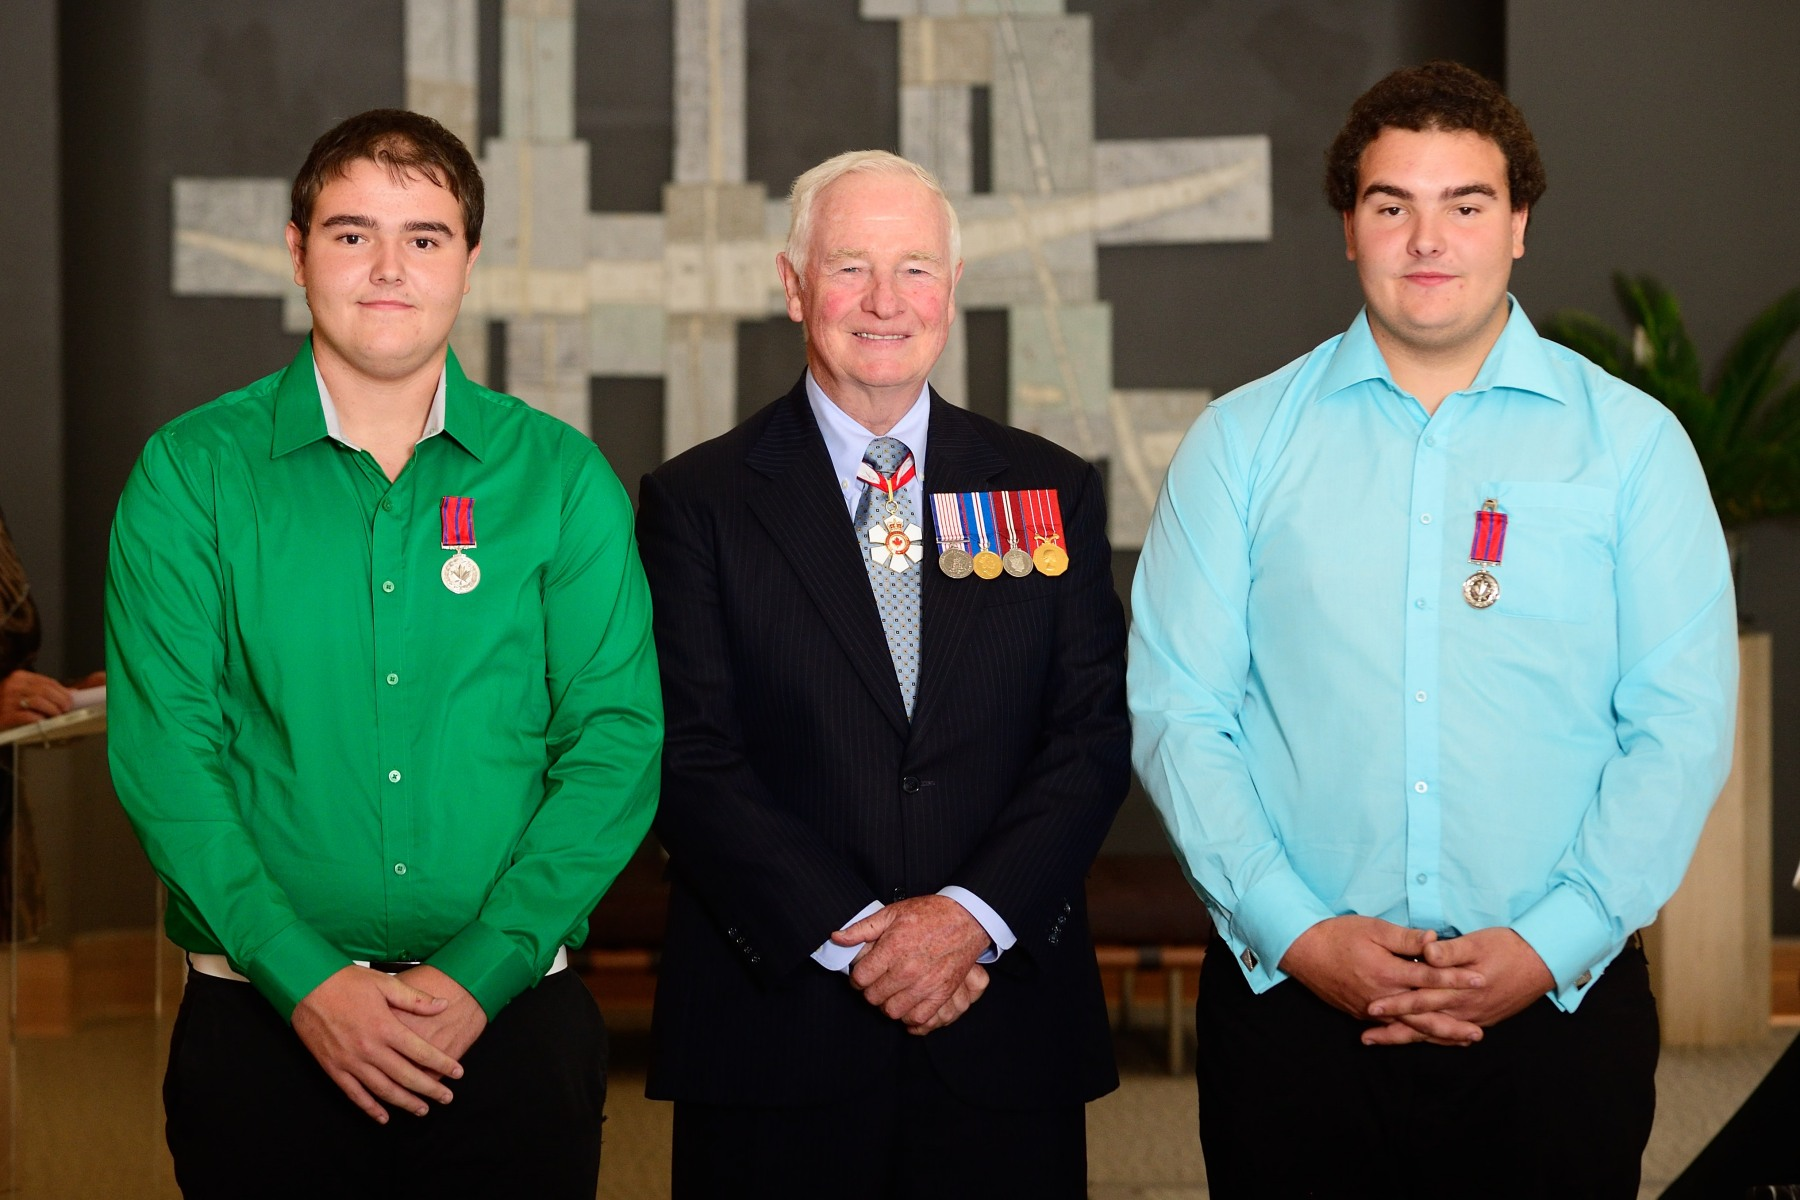 The Governor General presented the Medal of Bravery to Junior Larochelle, M.B. and Steven Larochelle, M.B. On January 3, 2012, Junior Larochelle and Steven Larochelle rescued a man whose ATV had broken through the ice of Petit lac Long, in Saint-Jacques-le-Majeur-de-Wolfestown, Quebec. The two brothers rushed to the victim who was clinging to the edge of the ice in his heavy, waterlogged clothing. They lay down on the fragile surface and, working as a human chain, pulled the man out of the water.